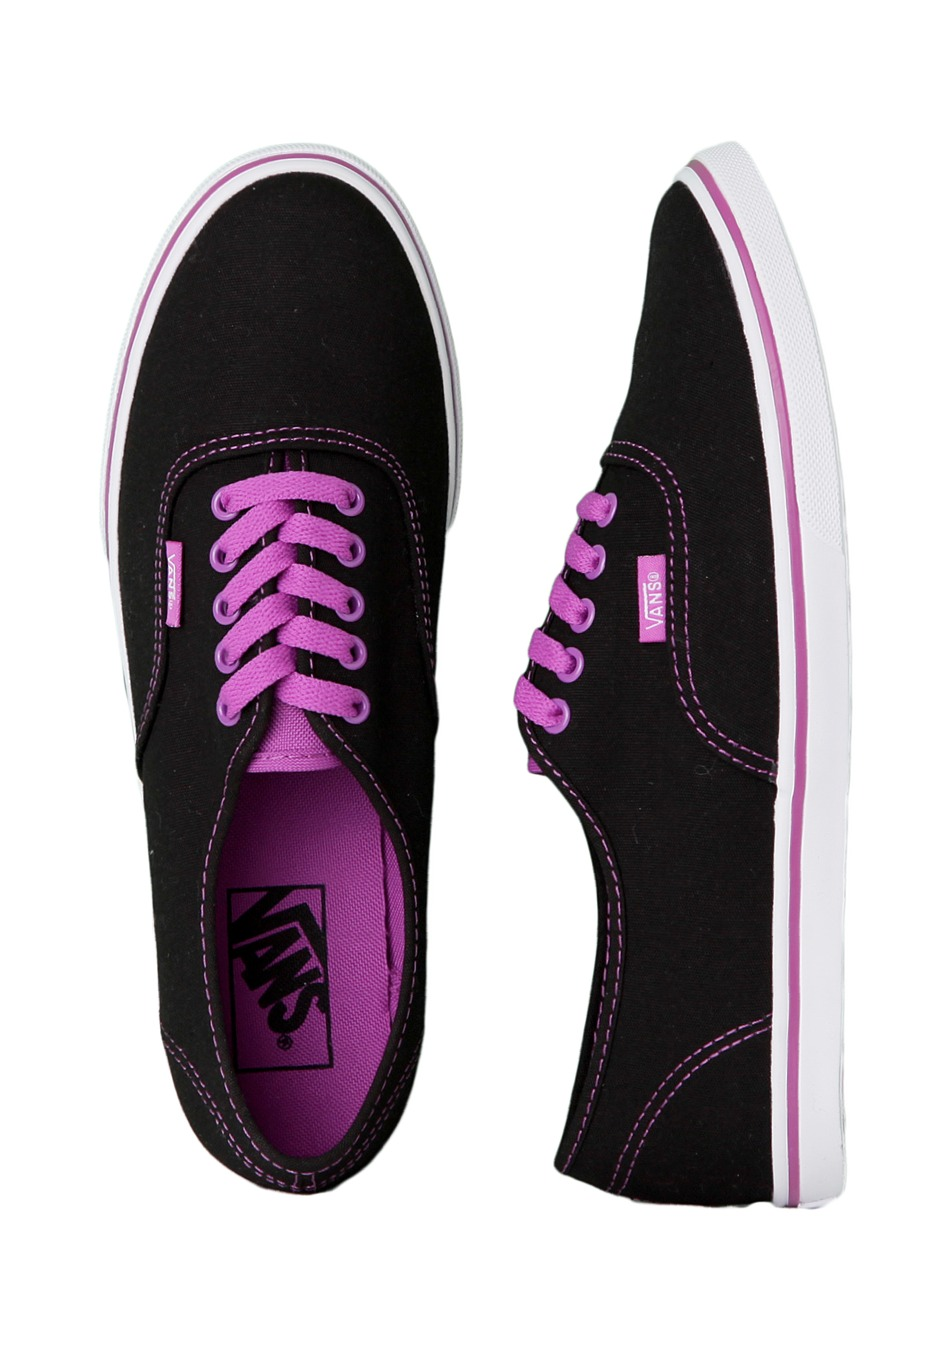 Vans Shoes Catalog Request